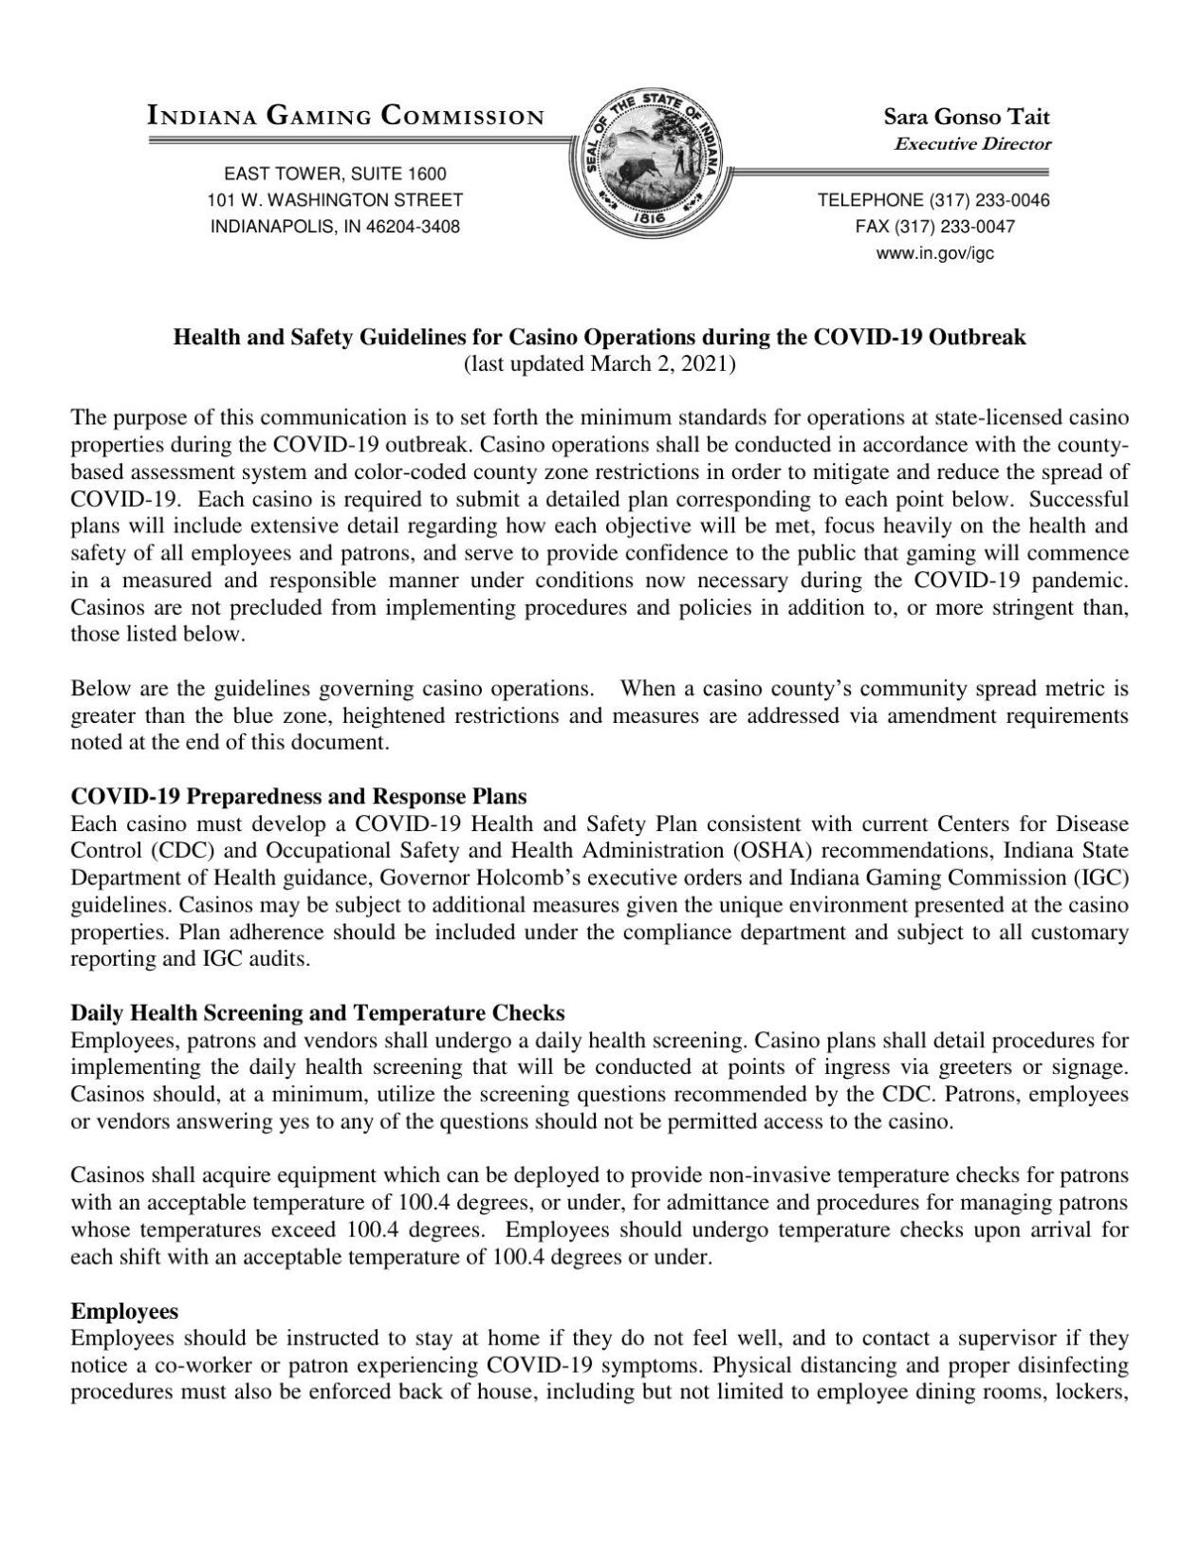 Updated COVID-19 operating guidance for Indiana casinos